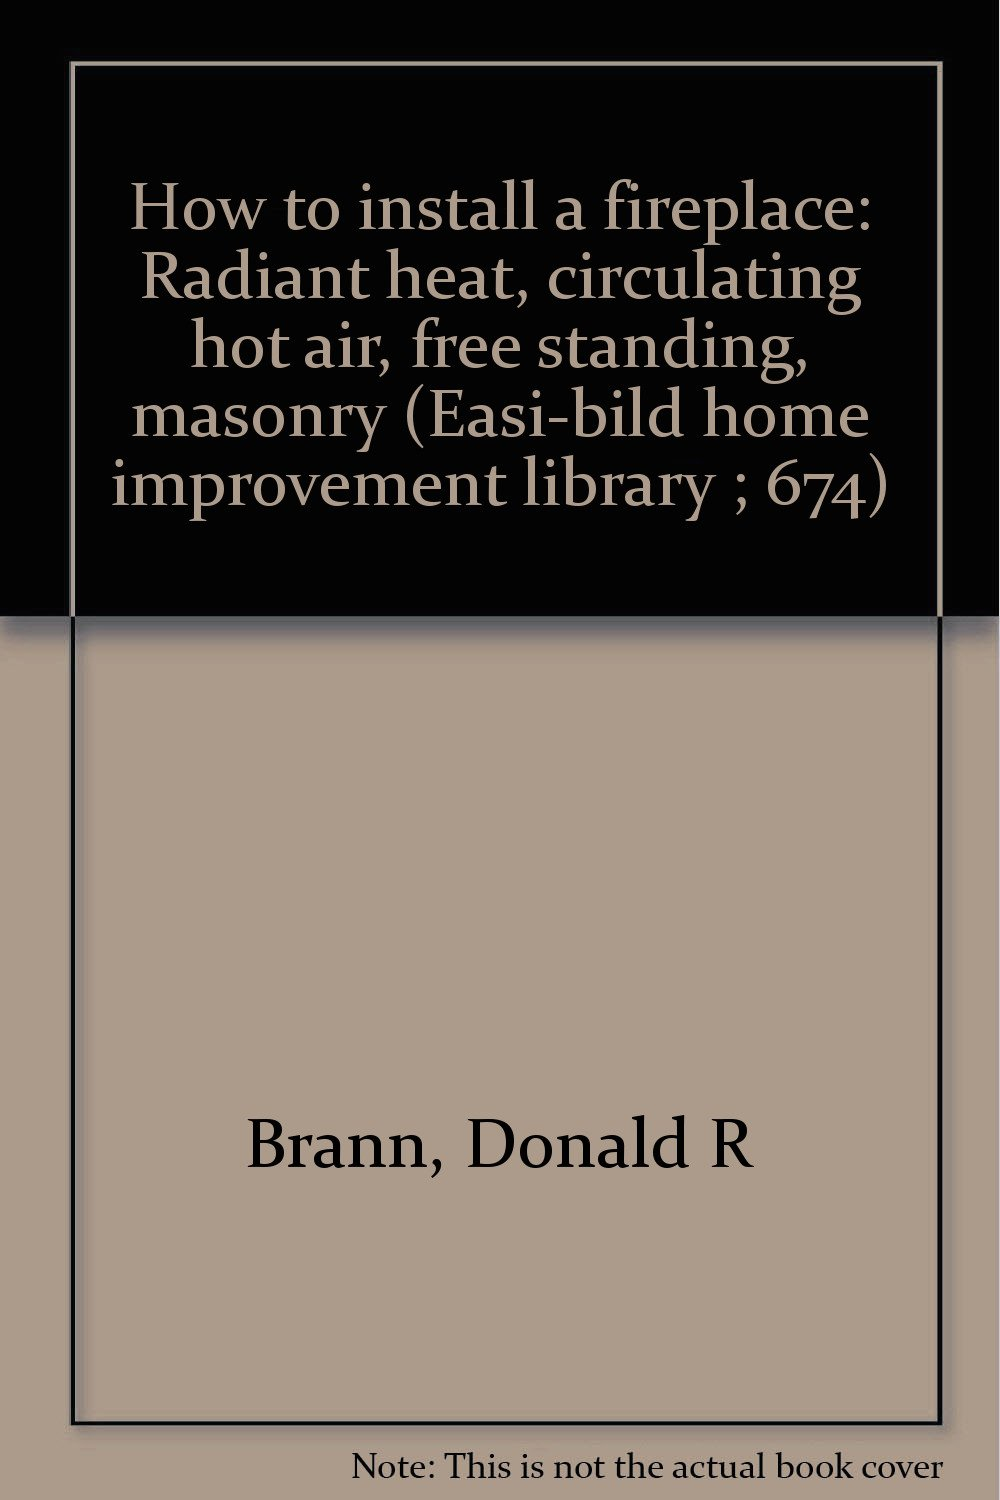 How to install a fireplace: Radiant heat, circulating hot air, free standing, masonry (Easi-bild home improvement library ; 674)